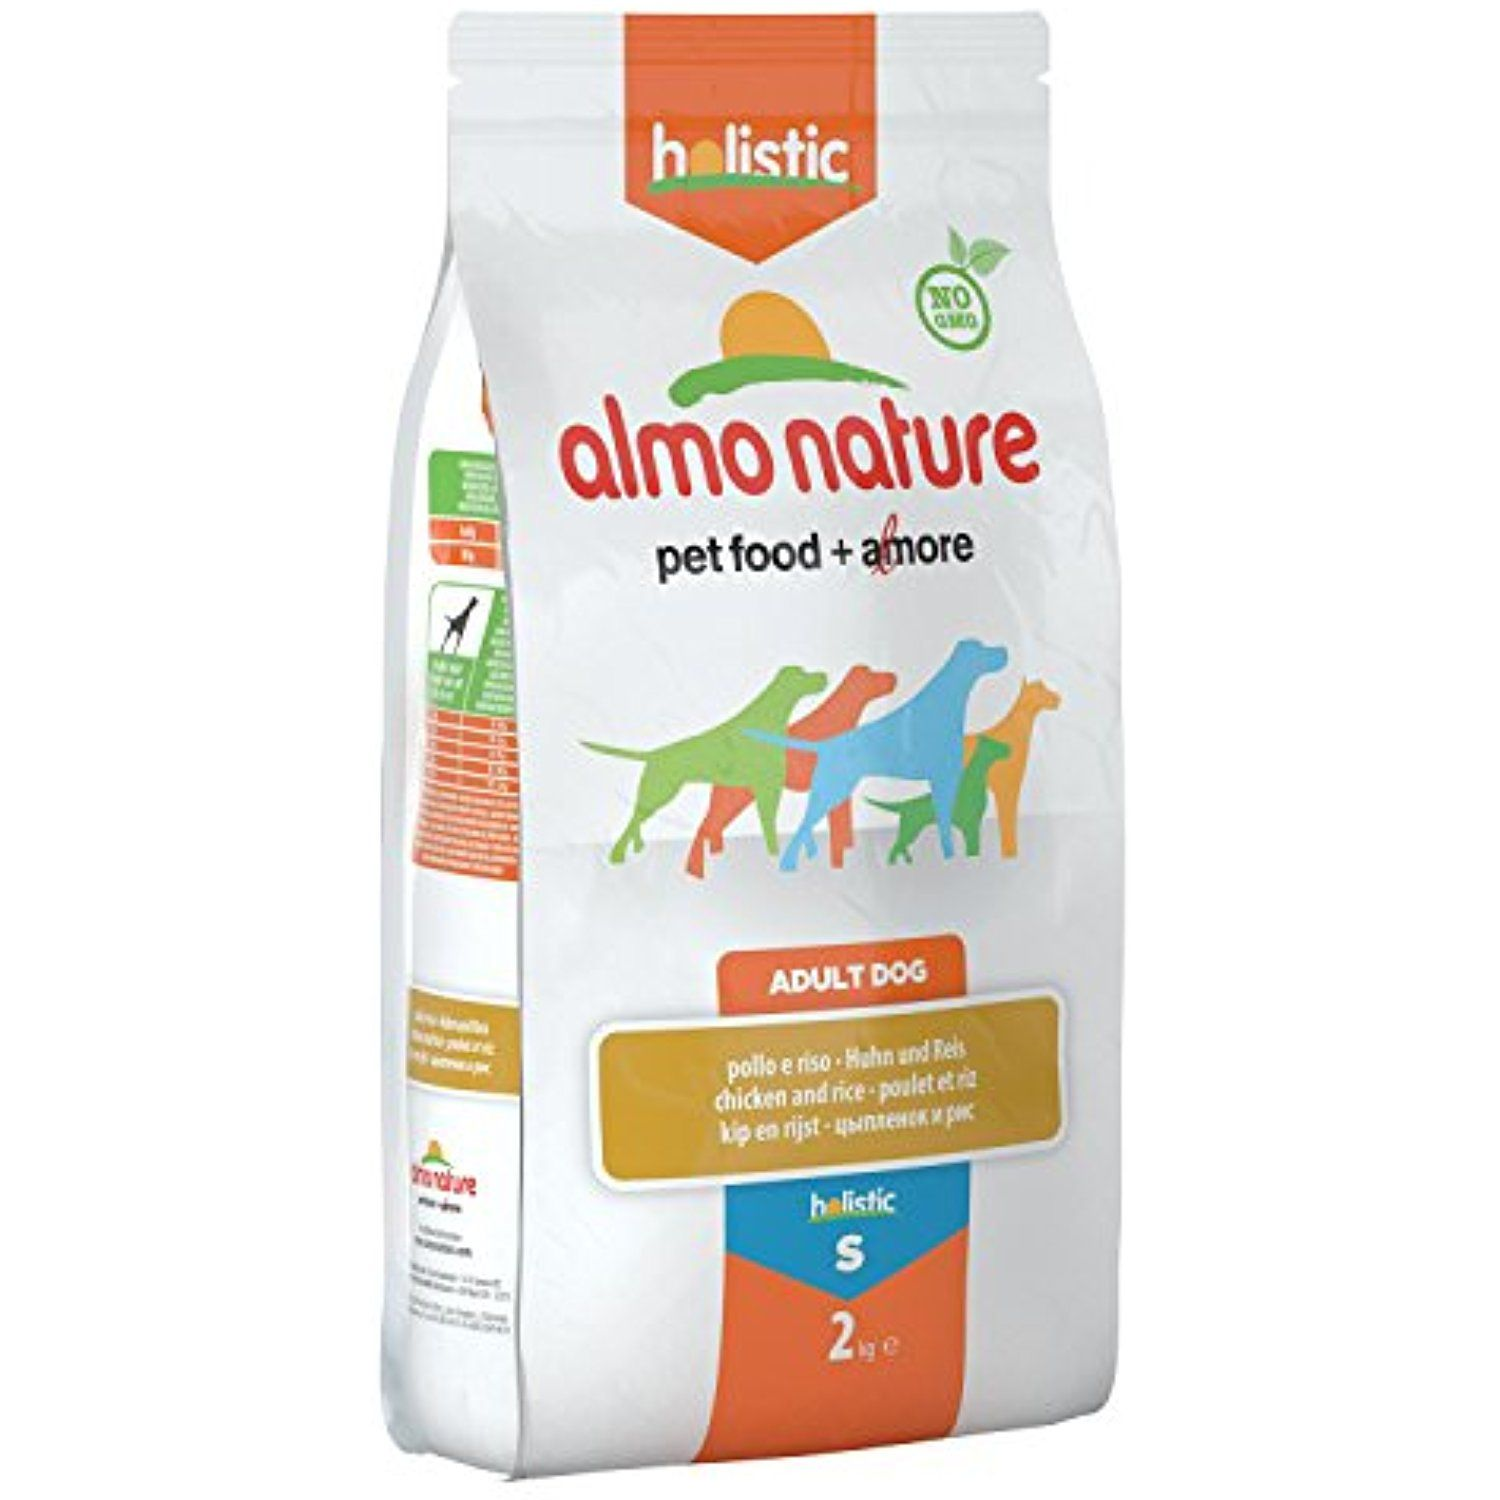 Almo Nature Holistic Small Dog With Chicken And Rice 2 Kg You Can Click Image For More Details This Is Holistic Dog Food Dog Food Recipes Dog Food Recall